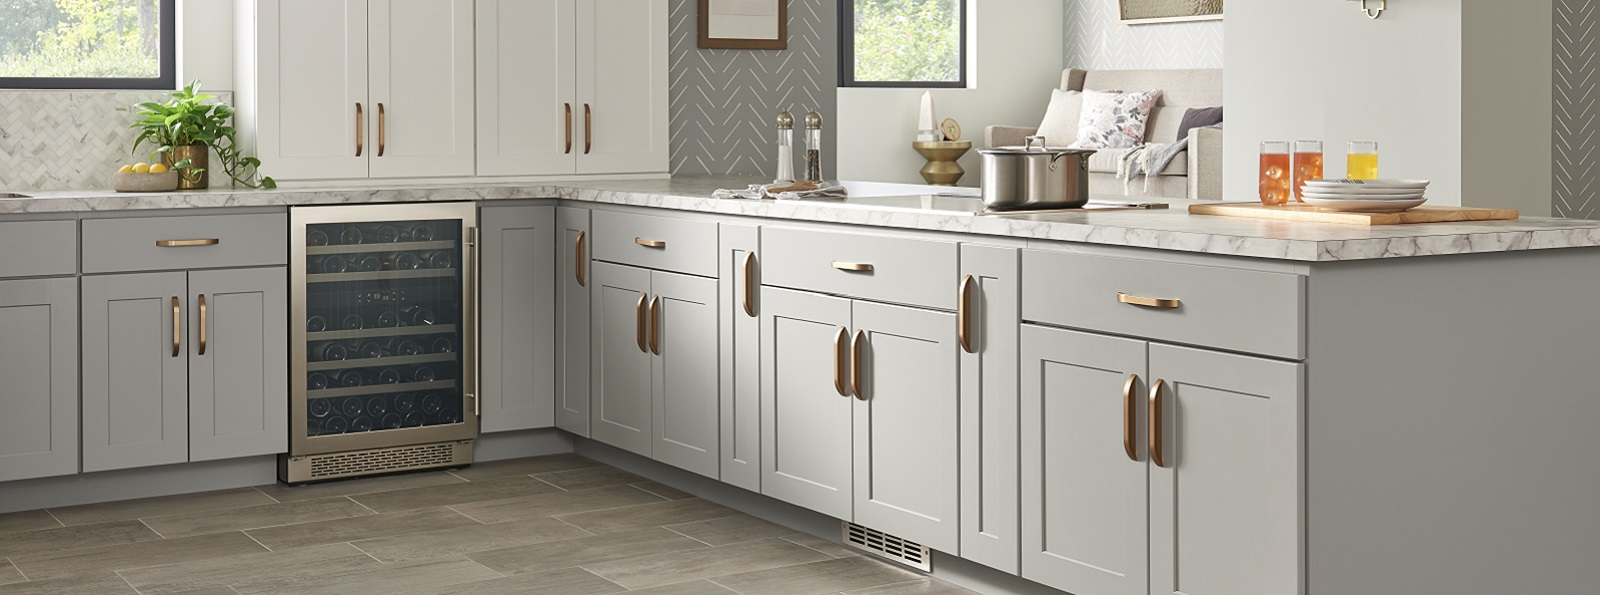 Dartmouth Cabinets in Pewter